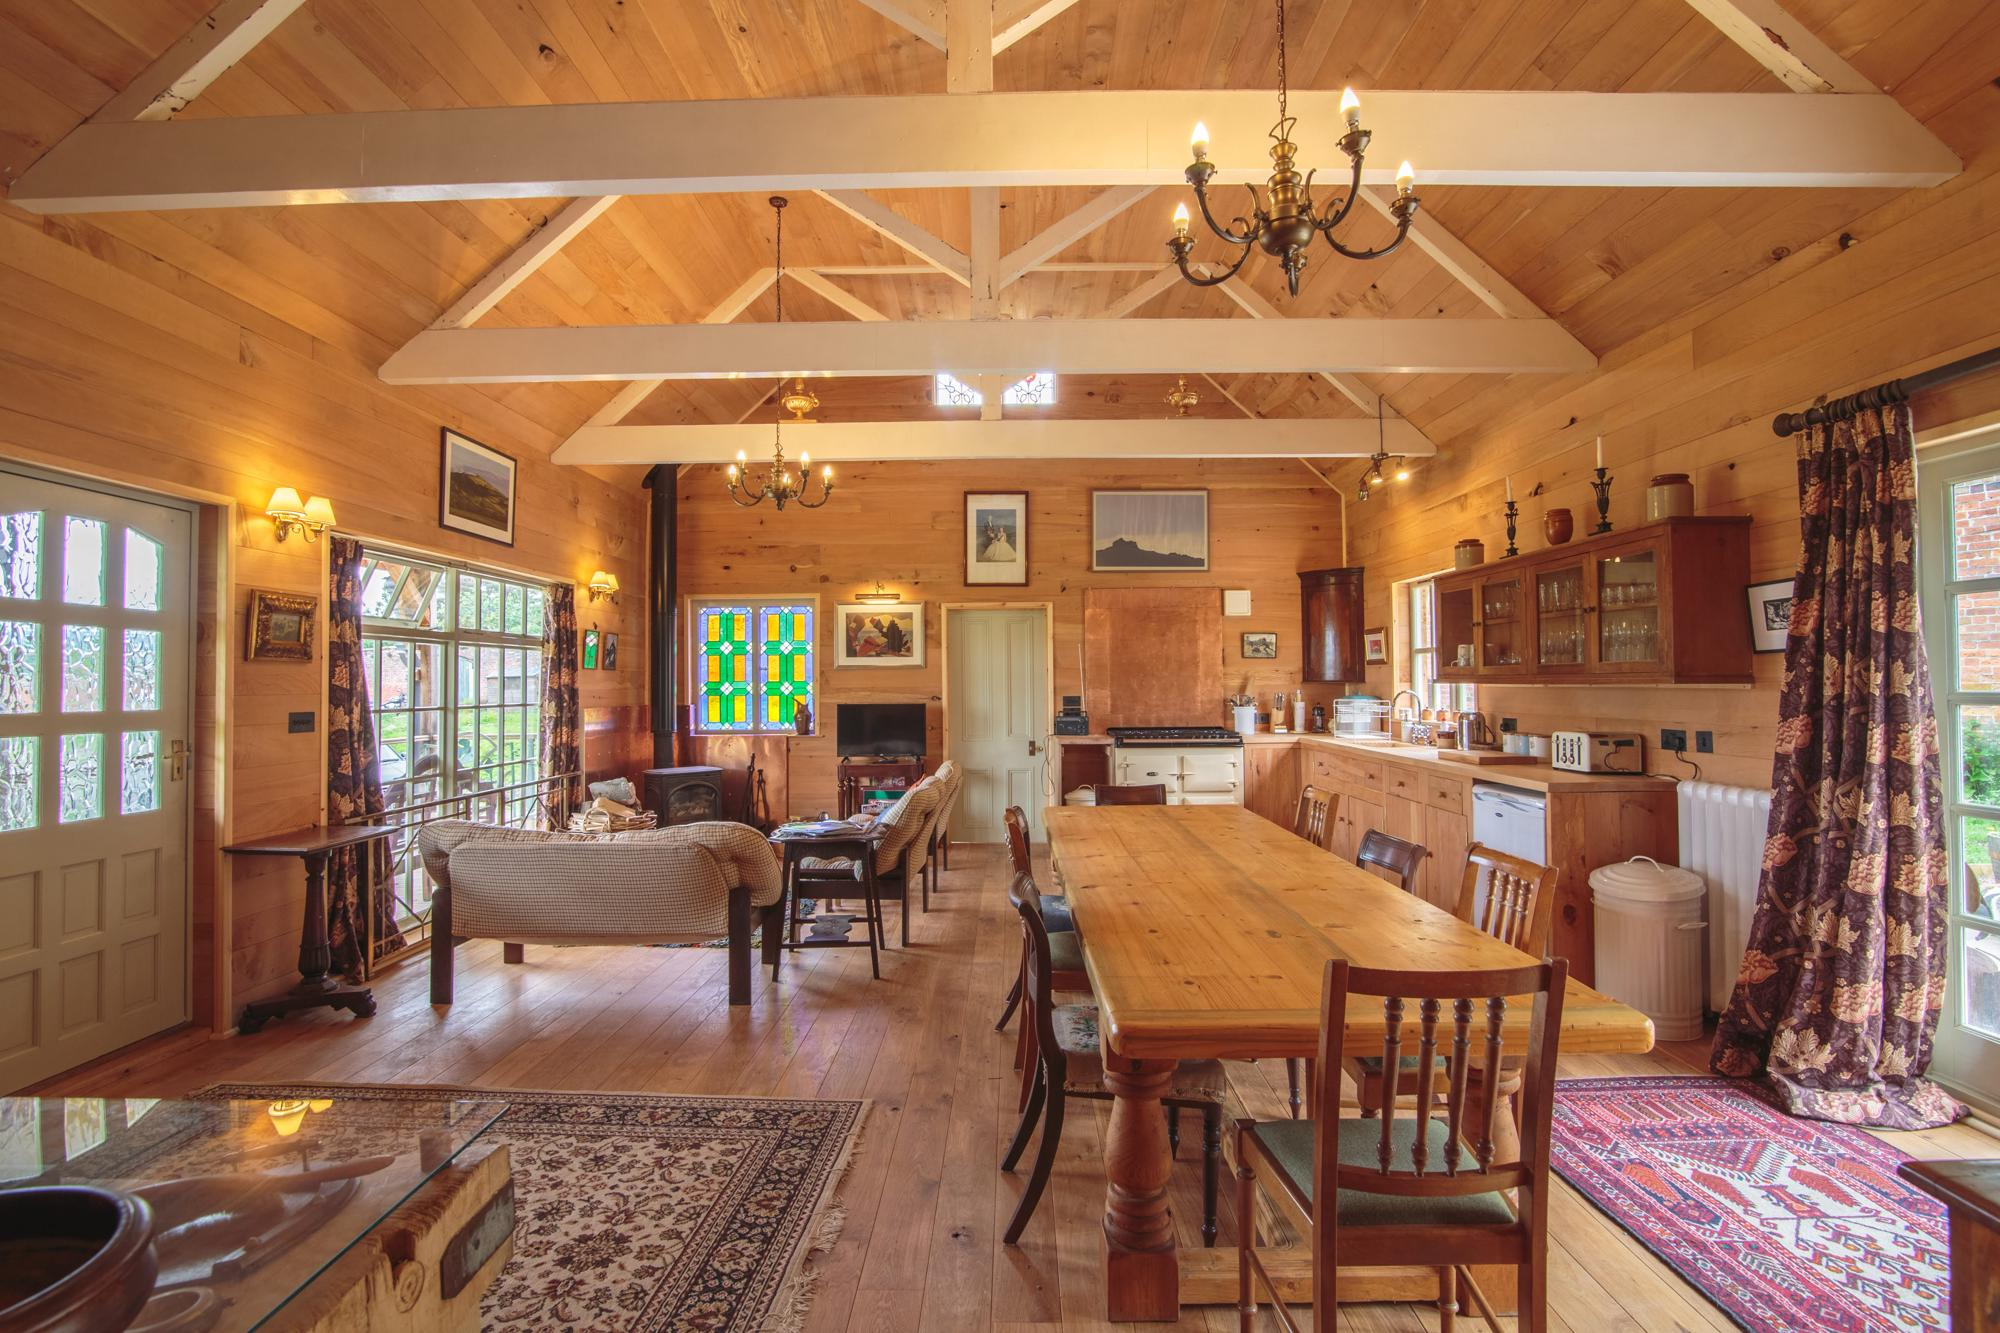 Self-Catering in Shropshire holidays at Cool Places